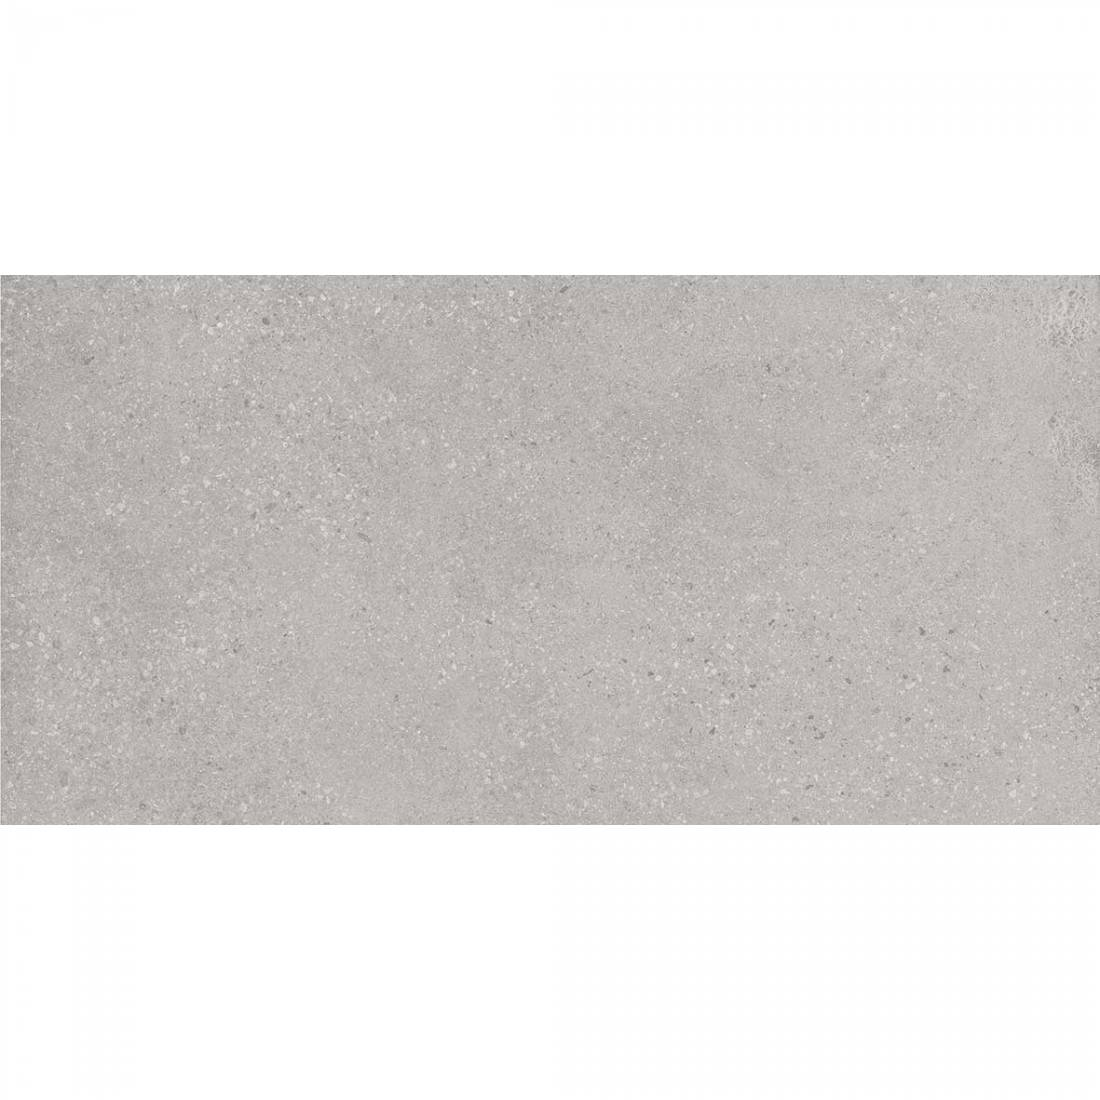 Urban 30x60 Grey Matt R11 1